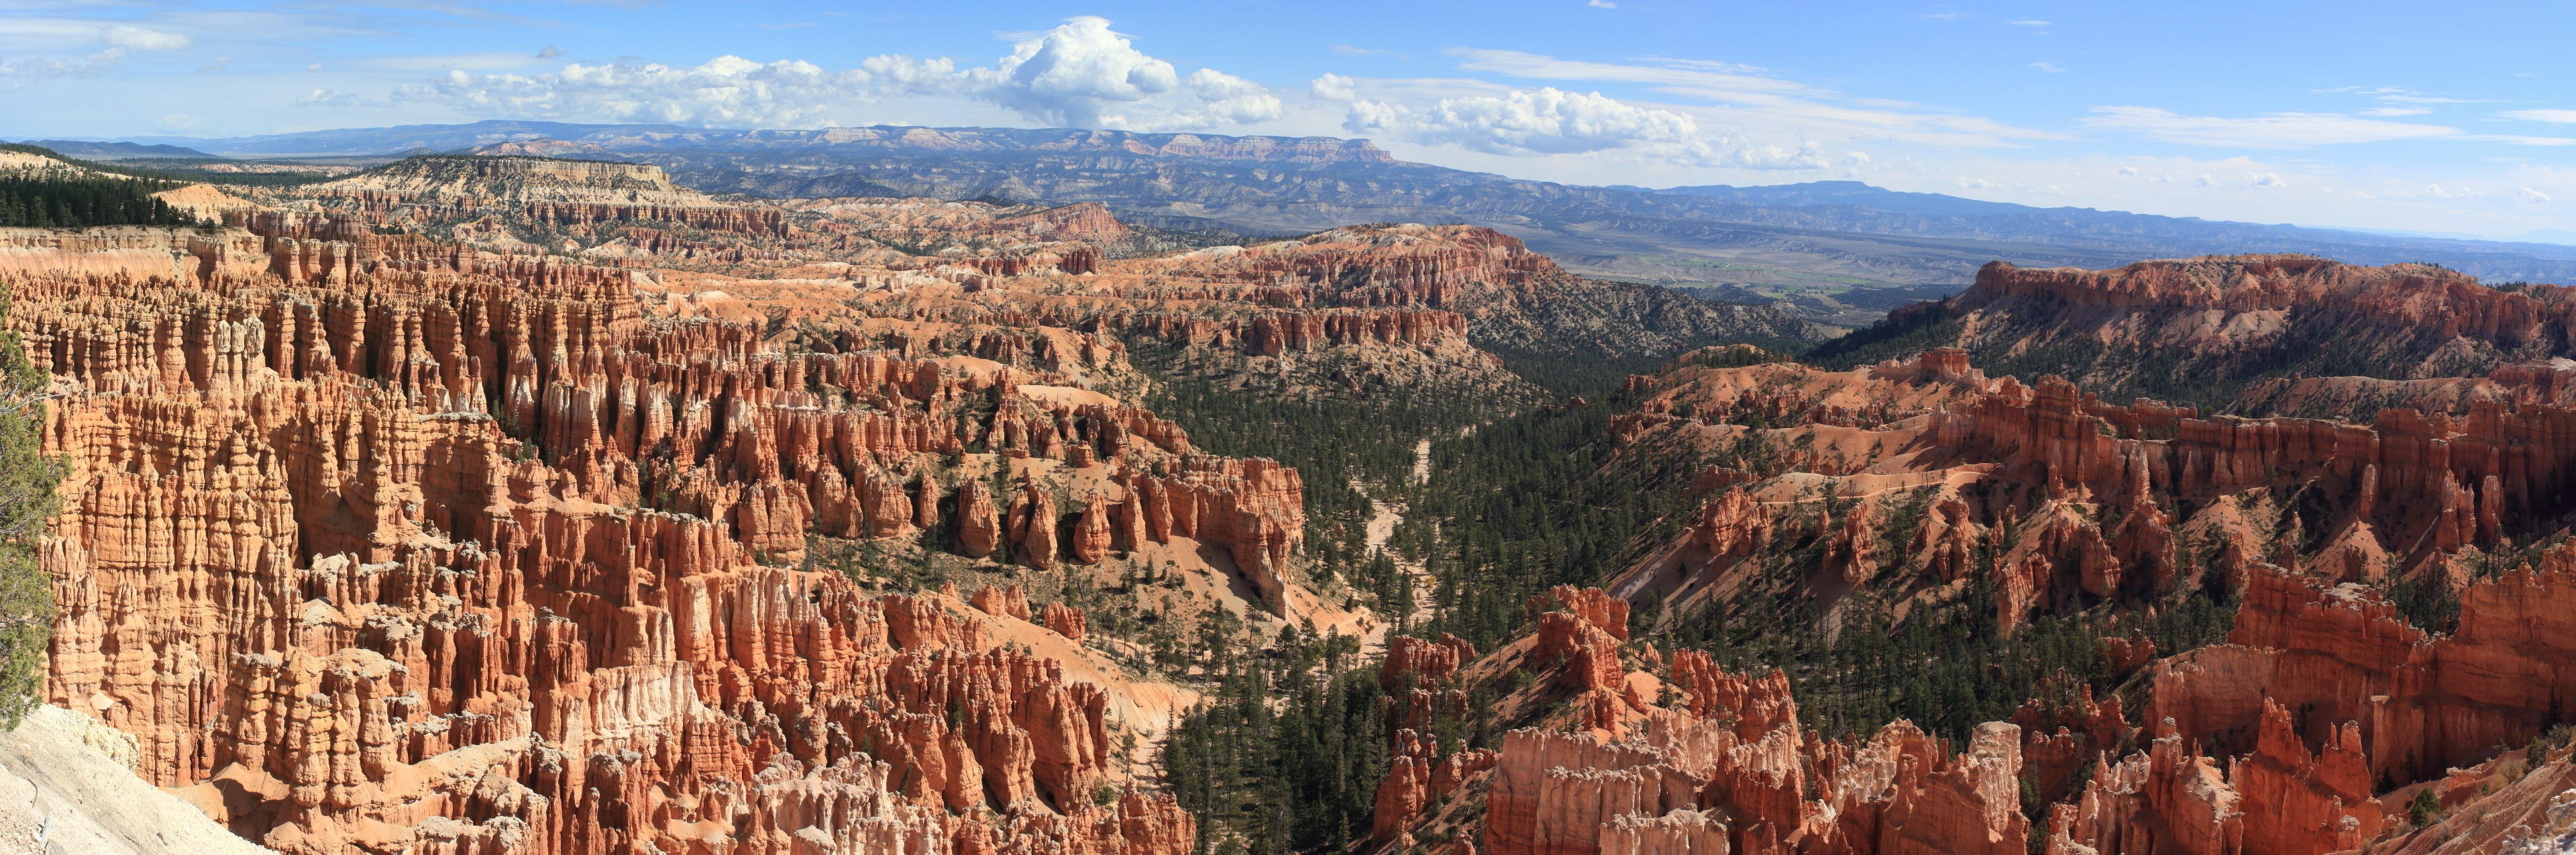 The Bryce Amphitheatre. Note the Aquarius Plateau on the distant horizon.